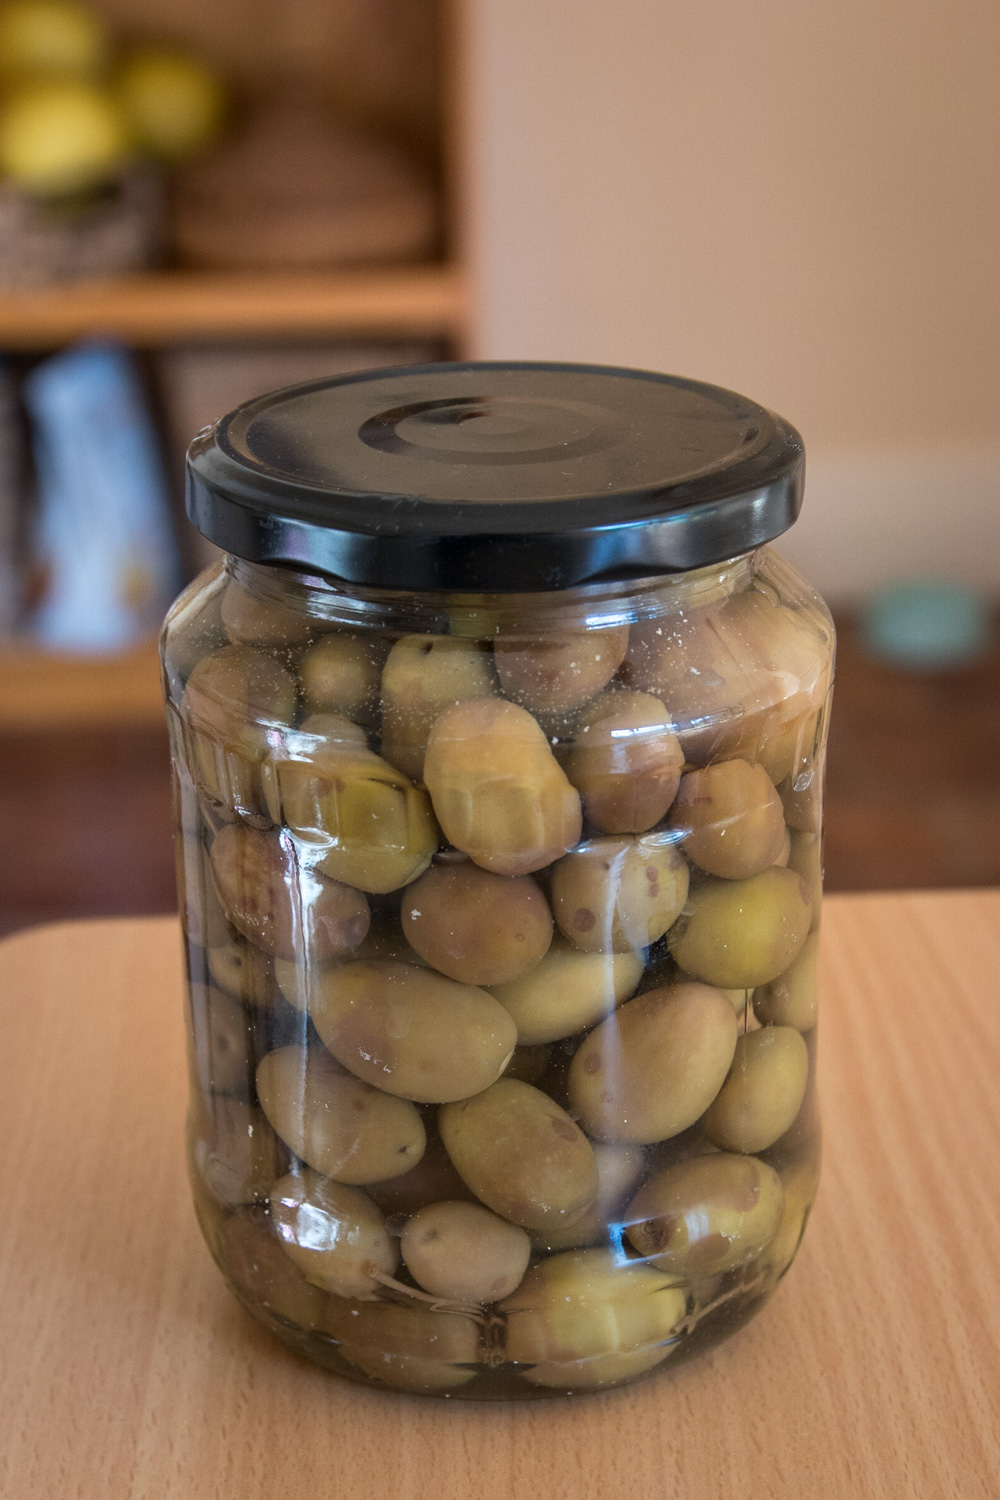 Olives, jarred up and ready to eat.